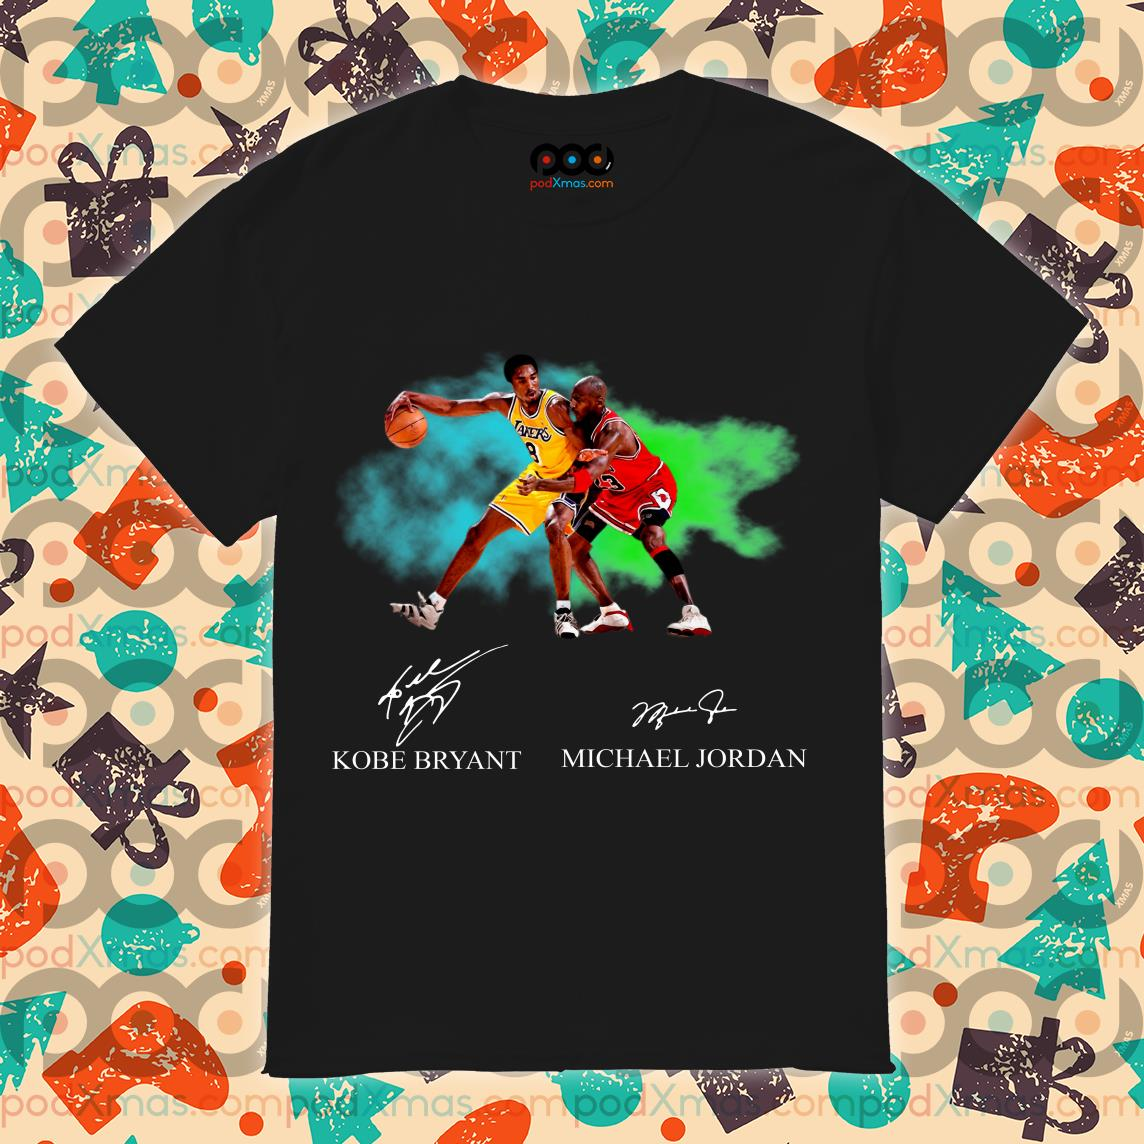 Kobe Bryant vs Michael Jordan Signatures shirt